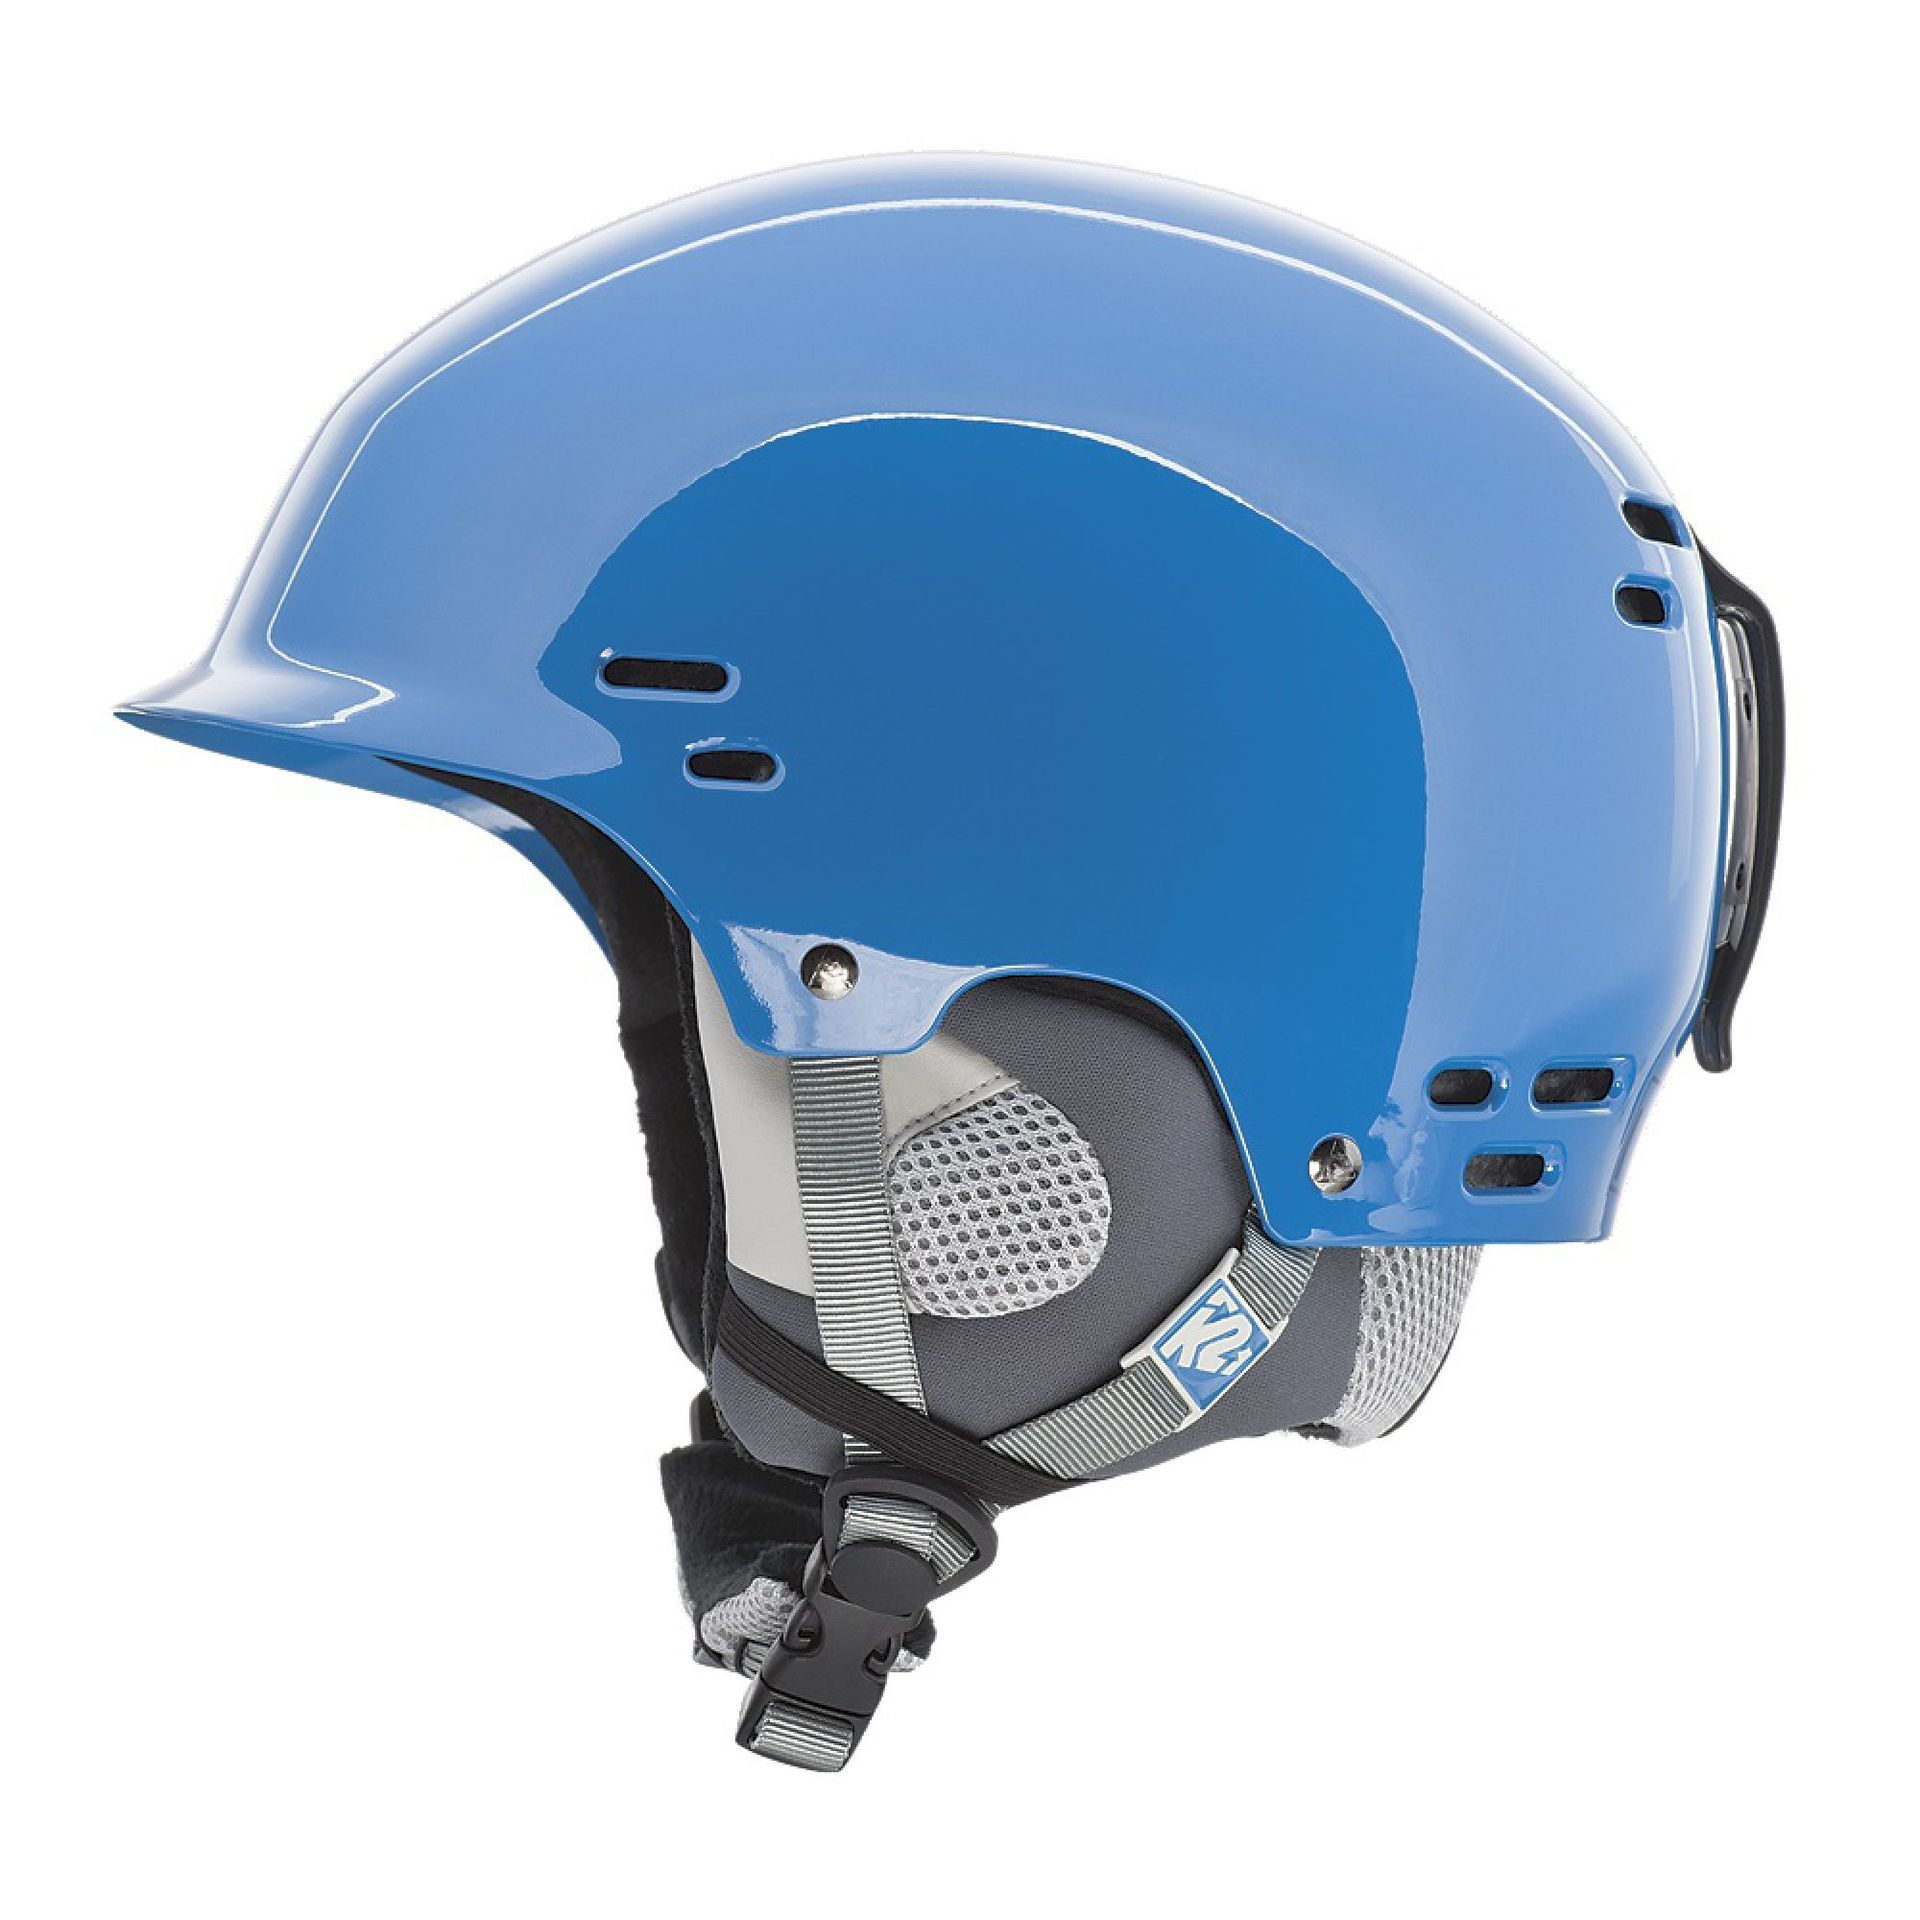 KASK K2 THRIVE BLUE